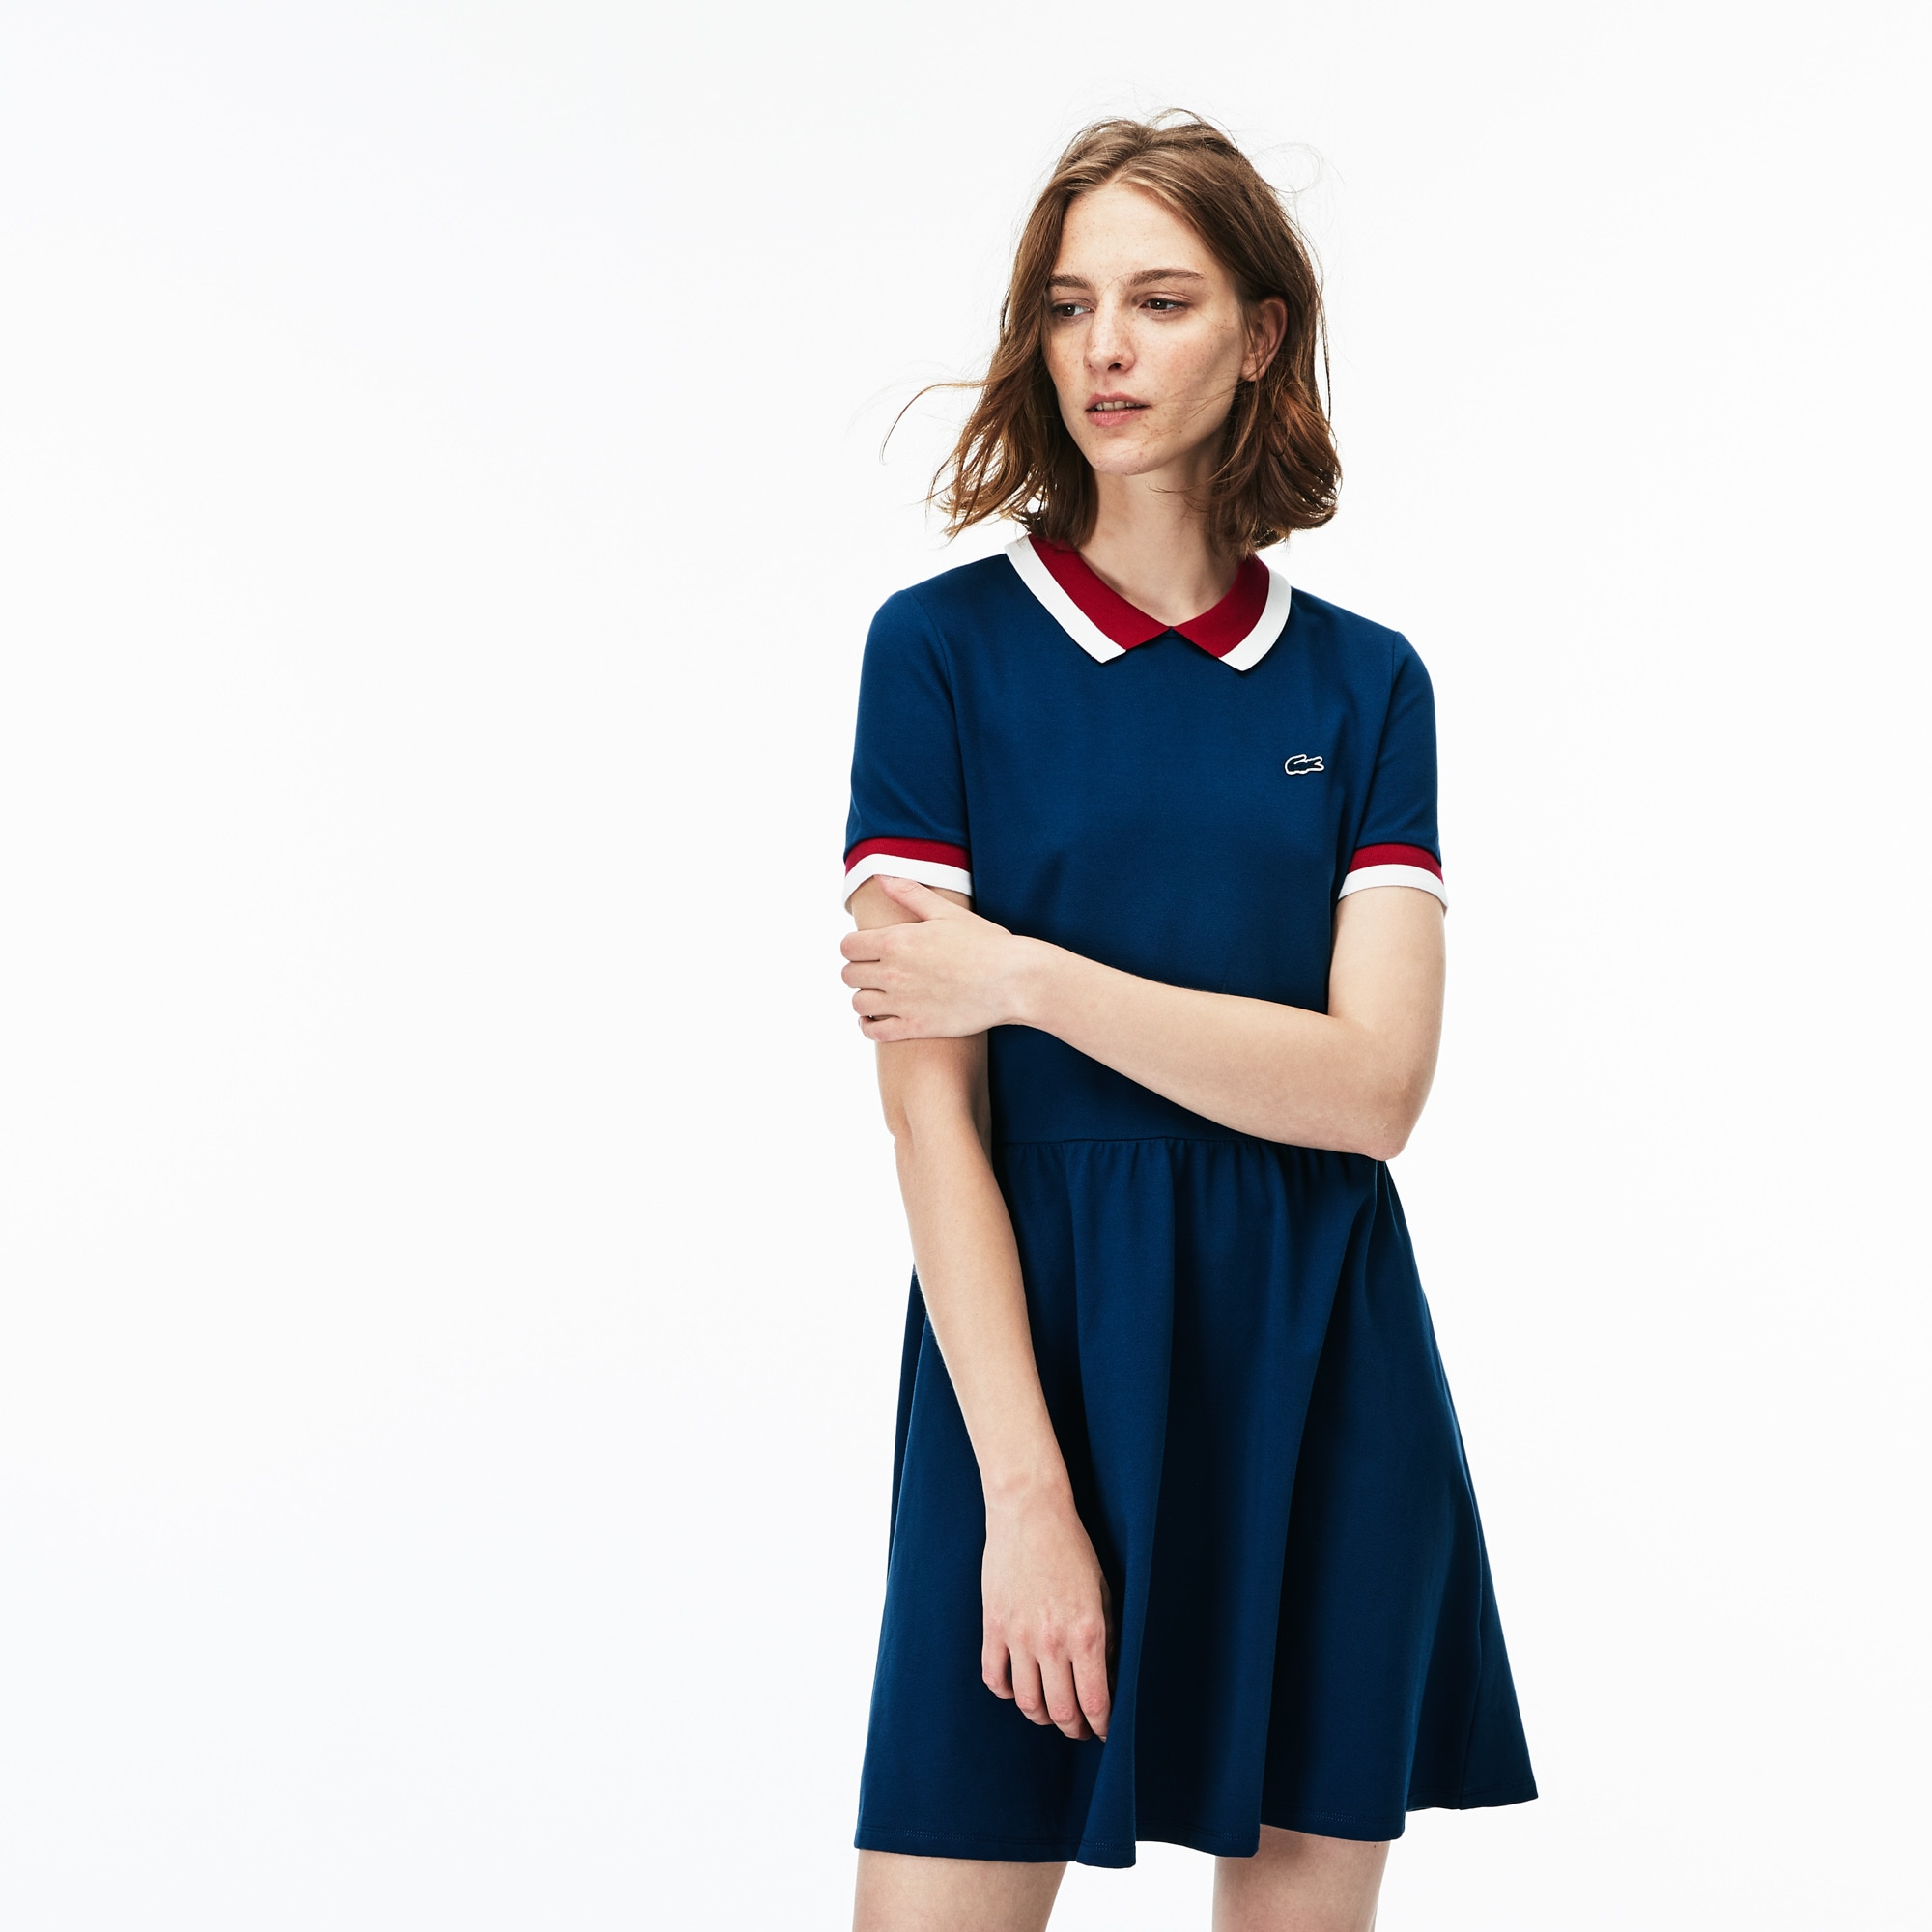 Dresses And Skirts Women's Lacoste Clothing rrv4Xqx